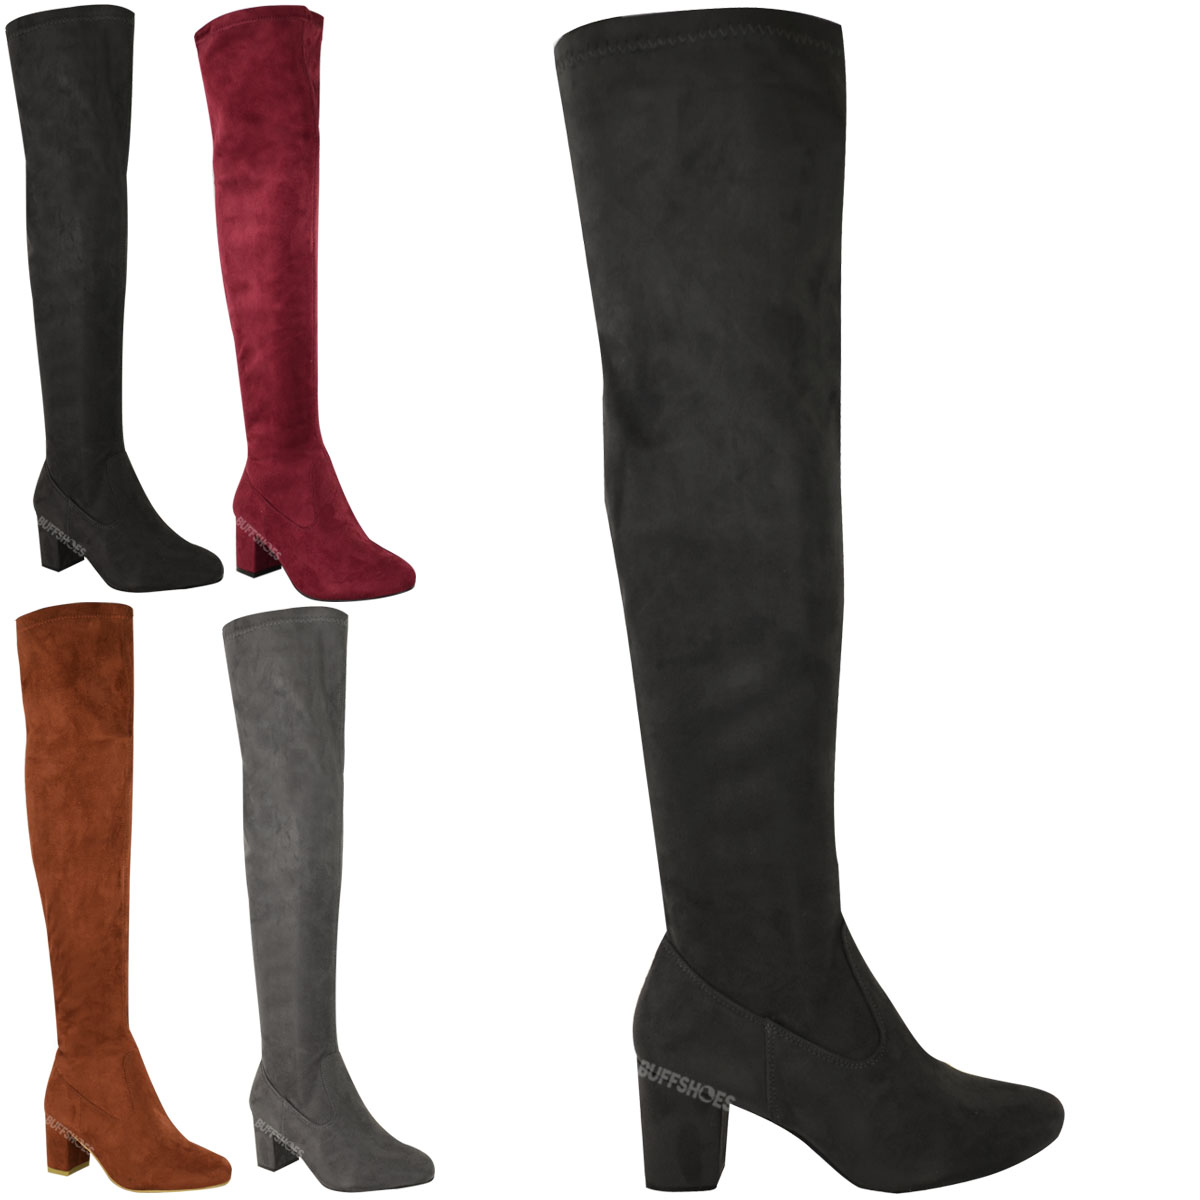 WOMENS LADIES OVER THE KNEE THIGH HIGH LOW BLOCK HEELS BOOTS WORK ...